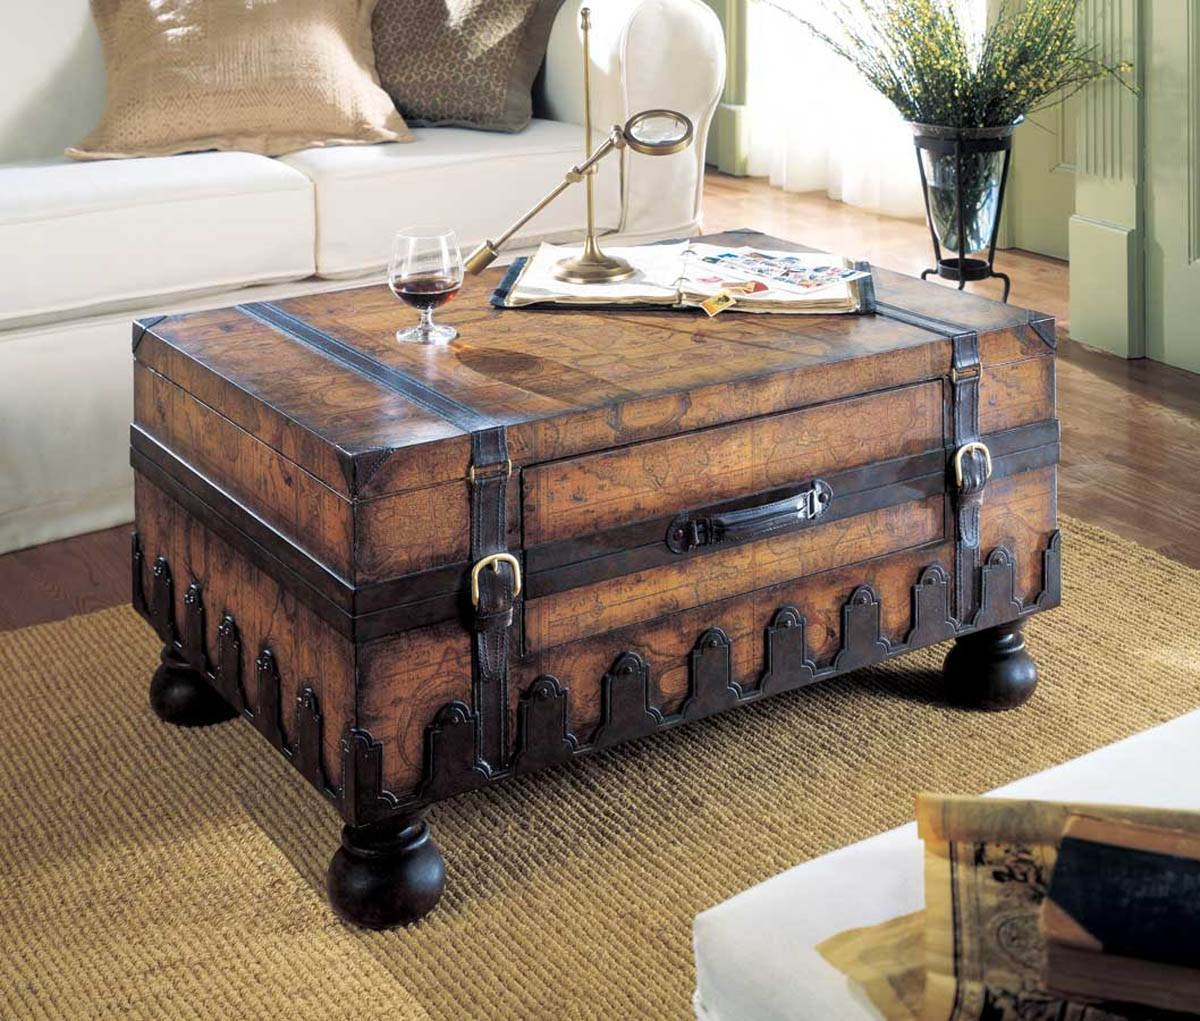 Coffee Tables Ideas: Trunks For Coffee Tables Ideas Trunk End throughout Trunks Coffee Tables (Image 10 of 30)